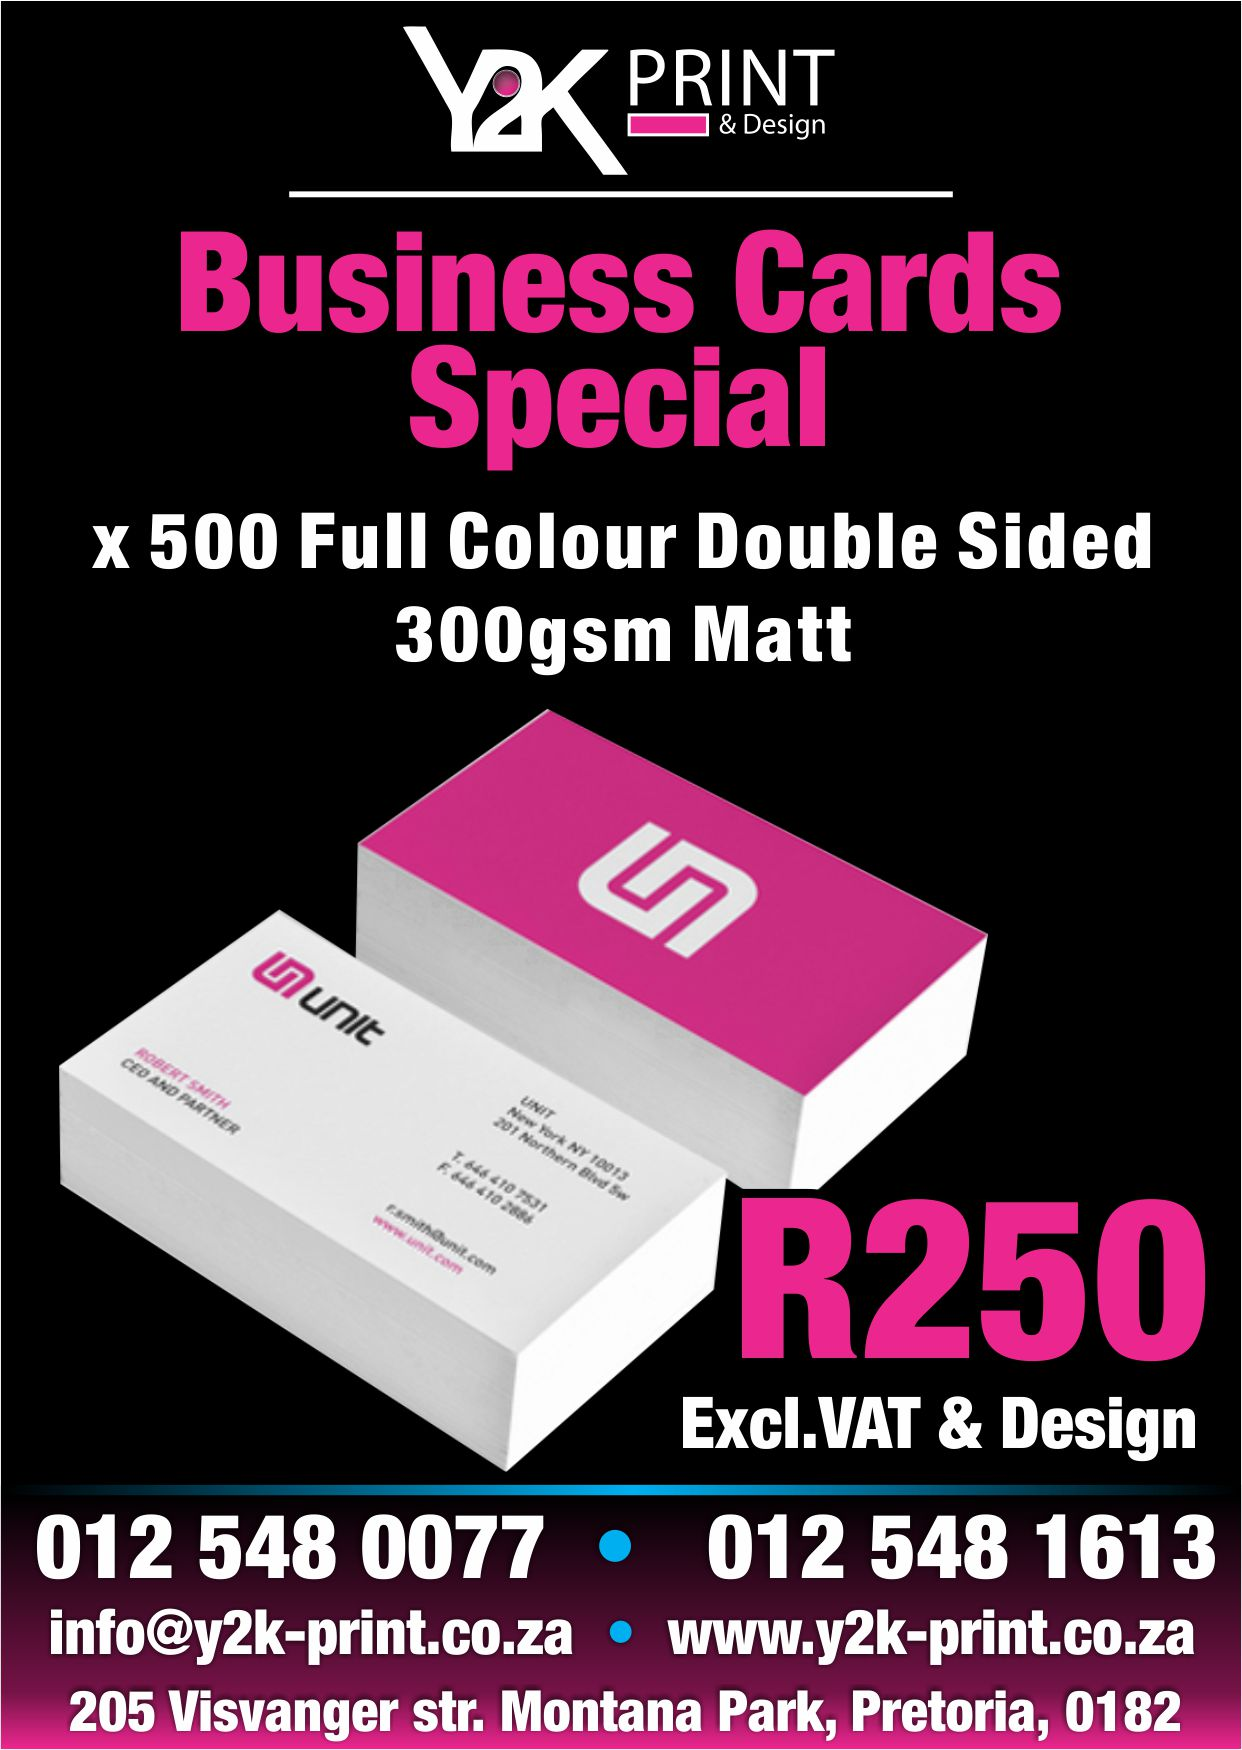 500 business cards y2k print and design junk mail 500 business cards y2k print and design reheart Image collections